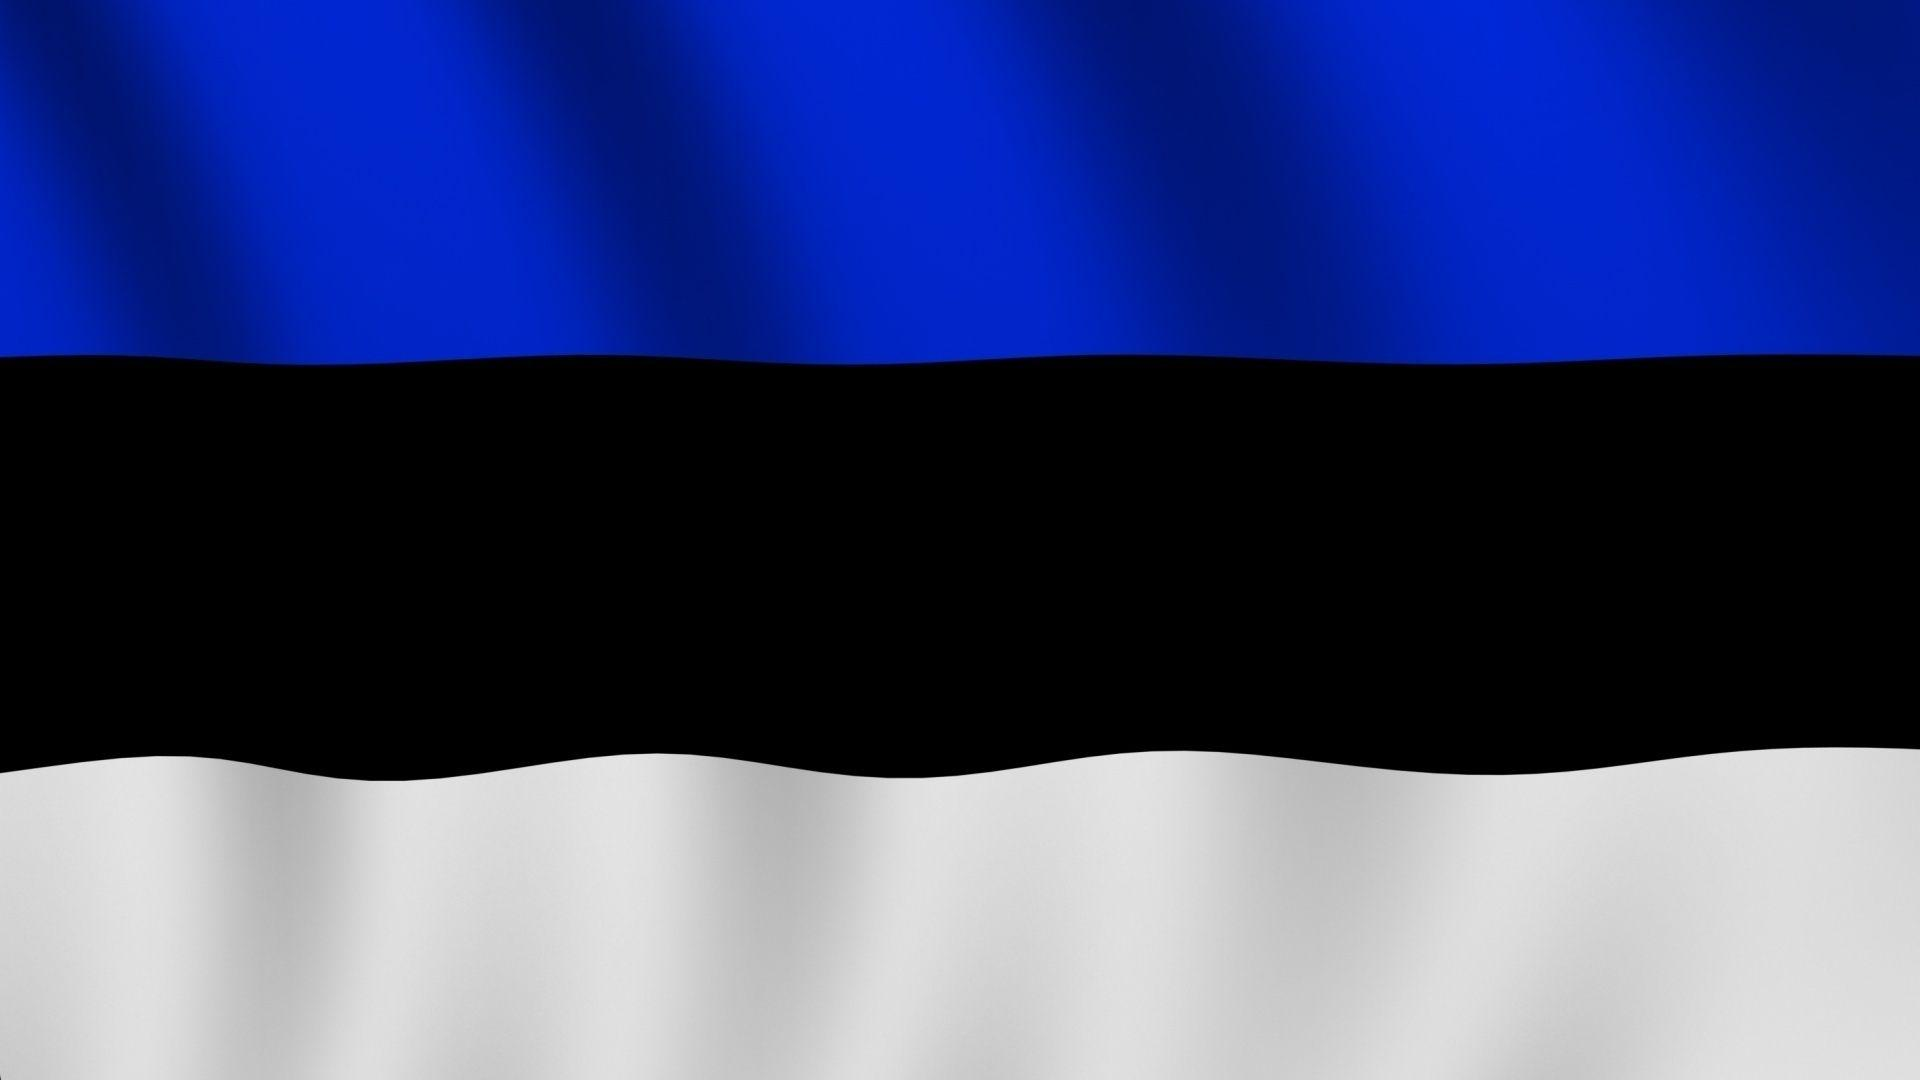 Estonia Wallpapers - Wallpaper Cave